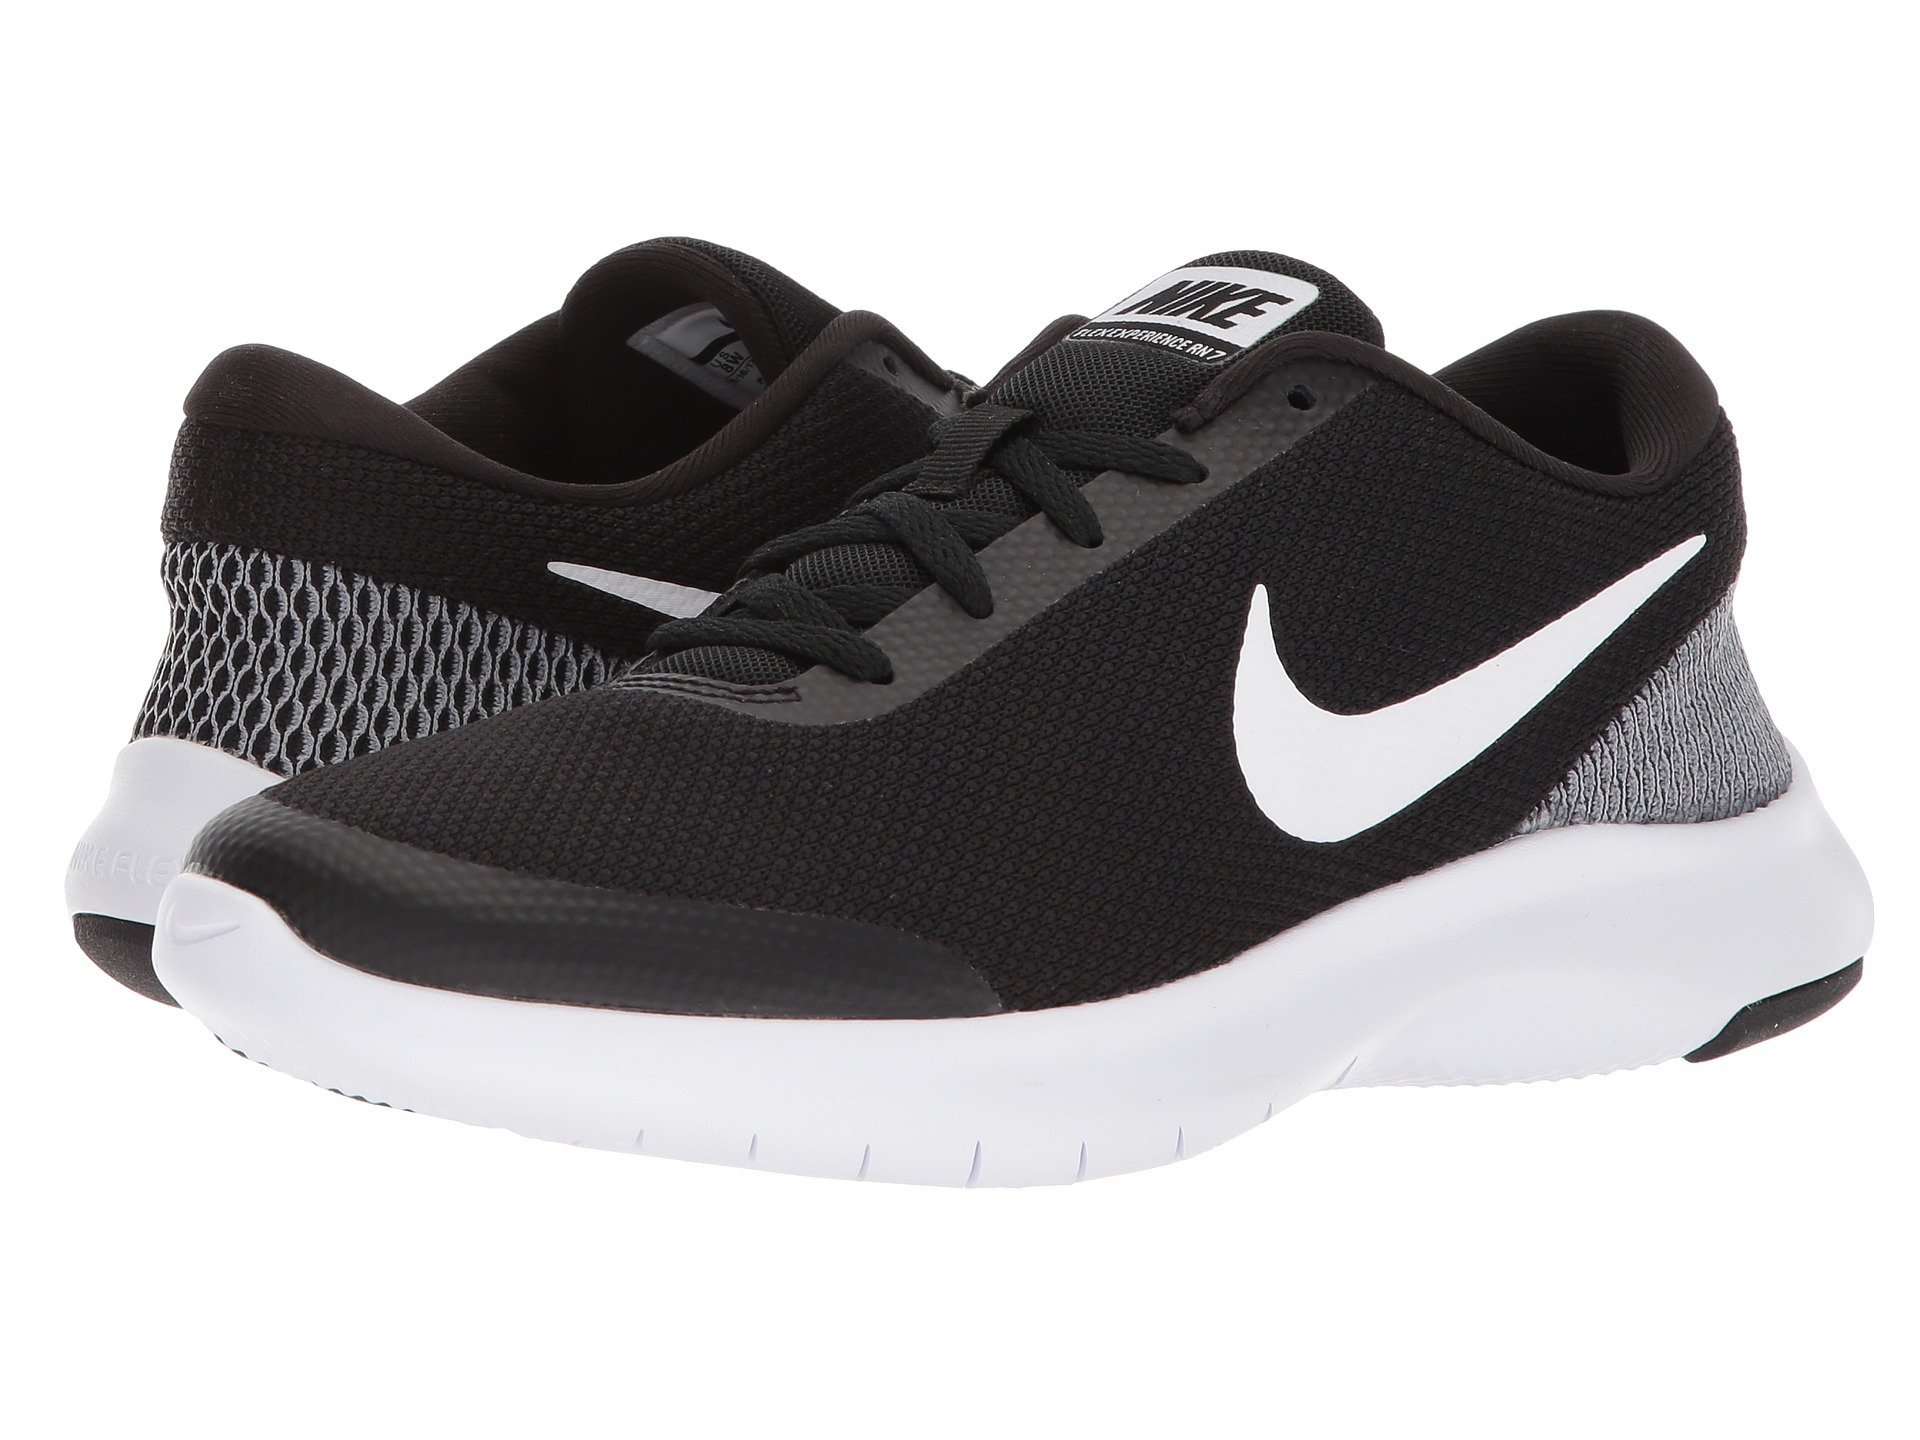 5ed3a933e317 Zappos  Nike Flex Experience RN 7 Sneakers – only  40 Shipped ...